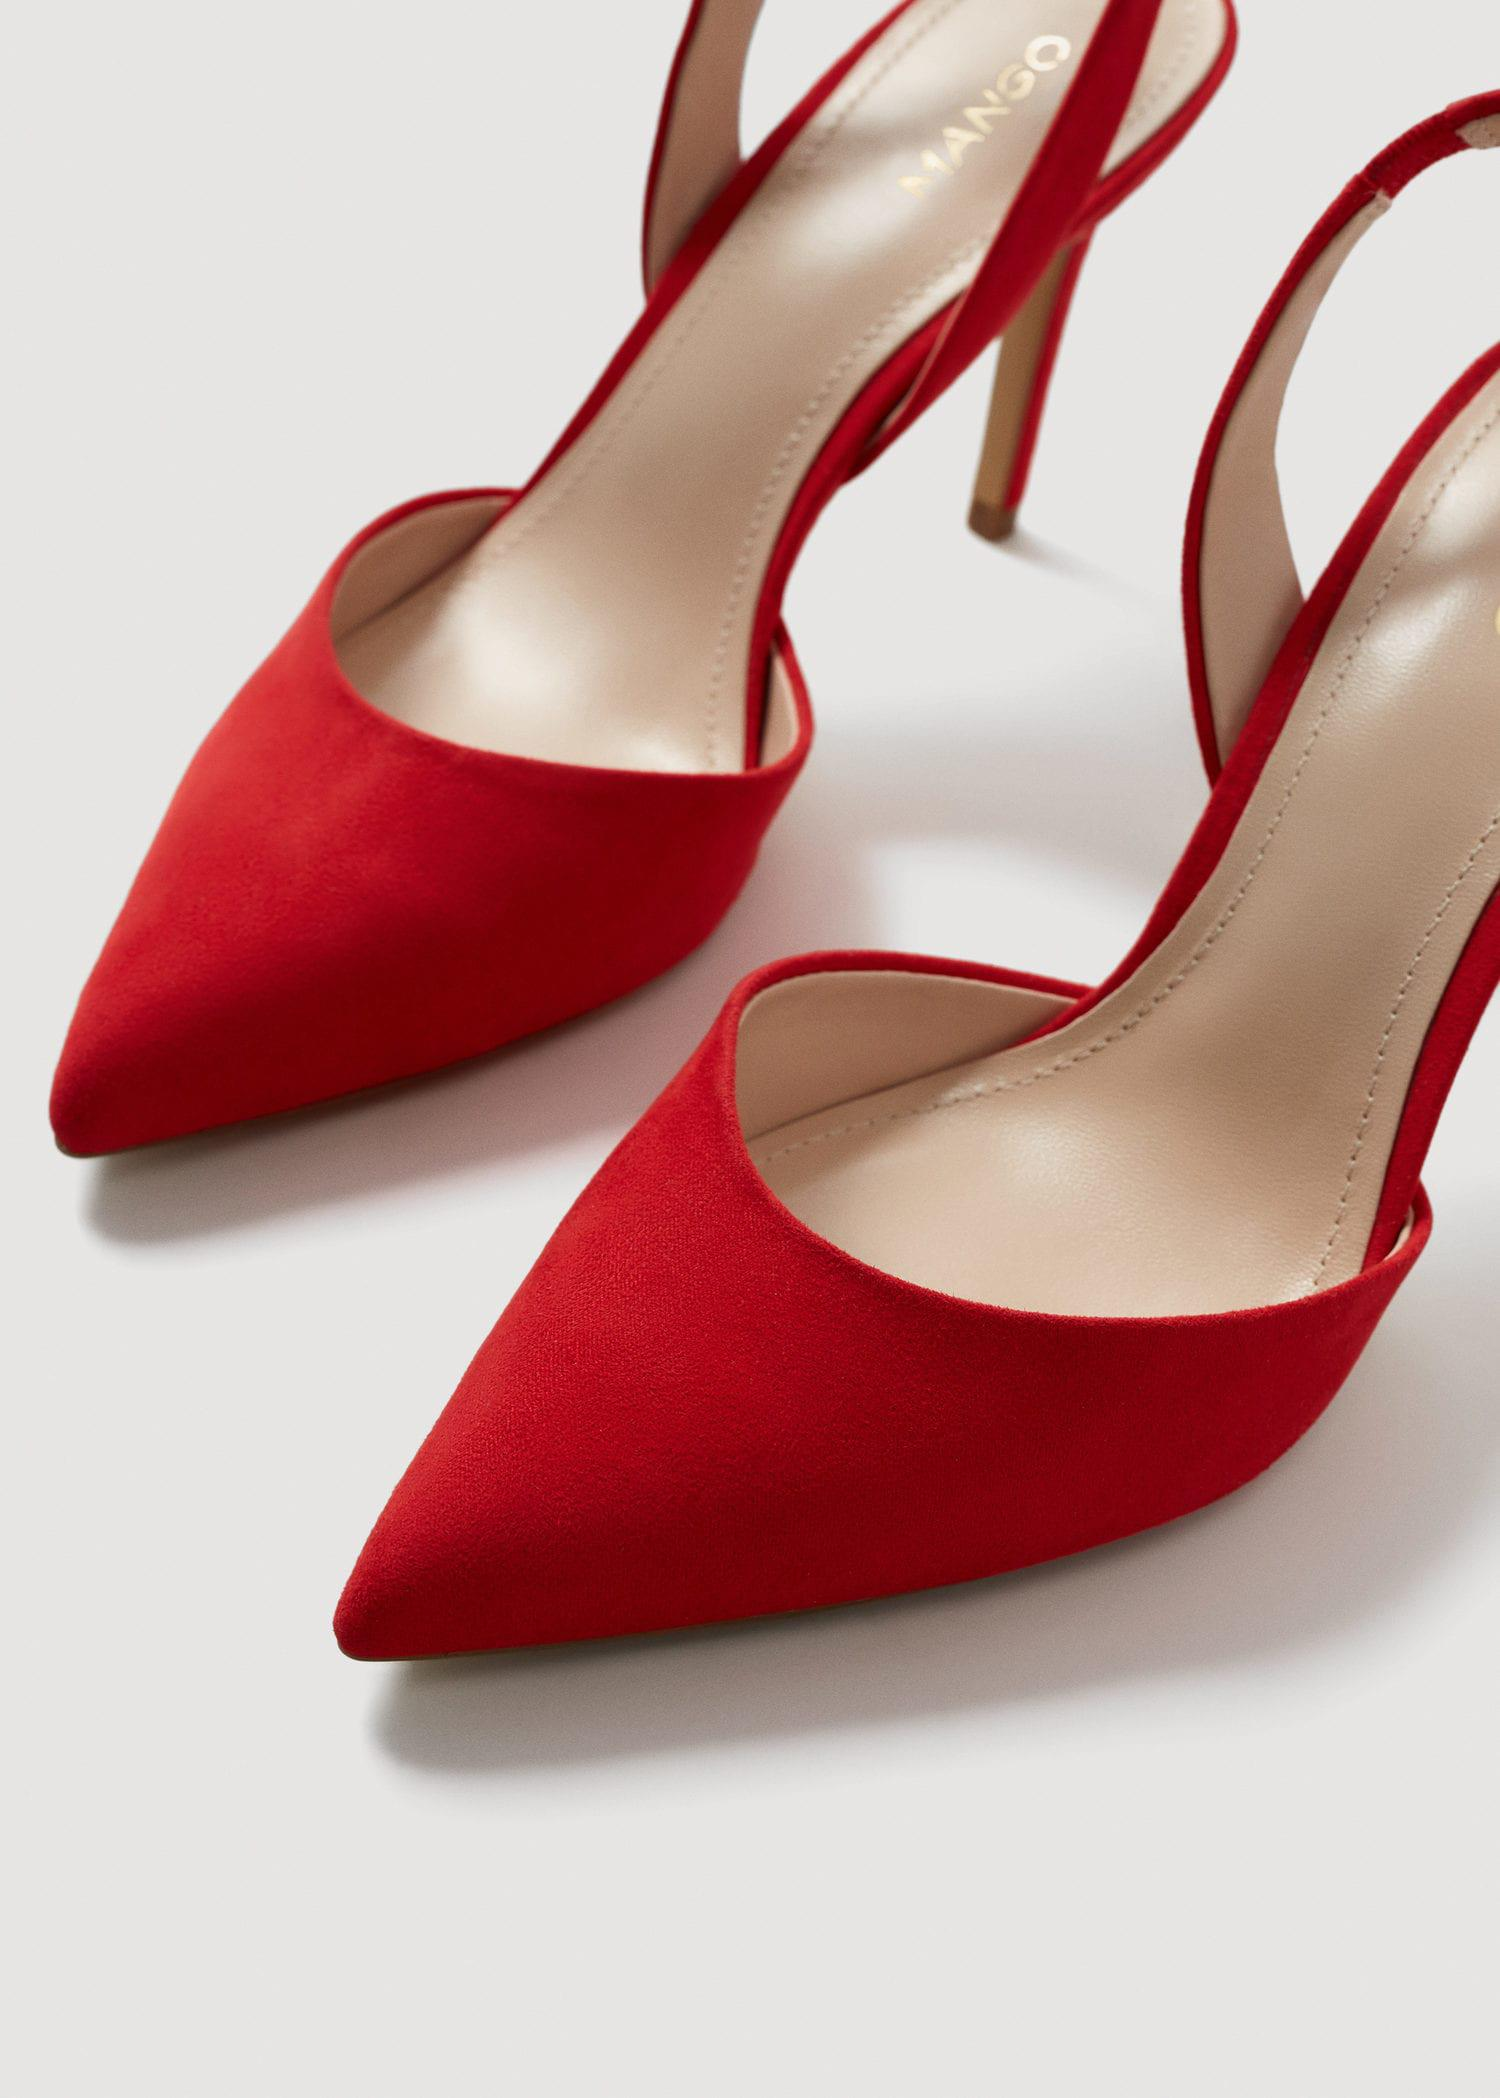 b29fb8576e2 Mango Red Slingback Heel Shoes